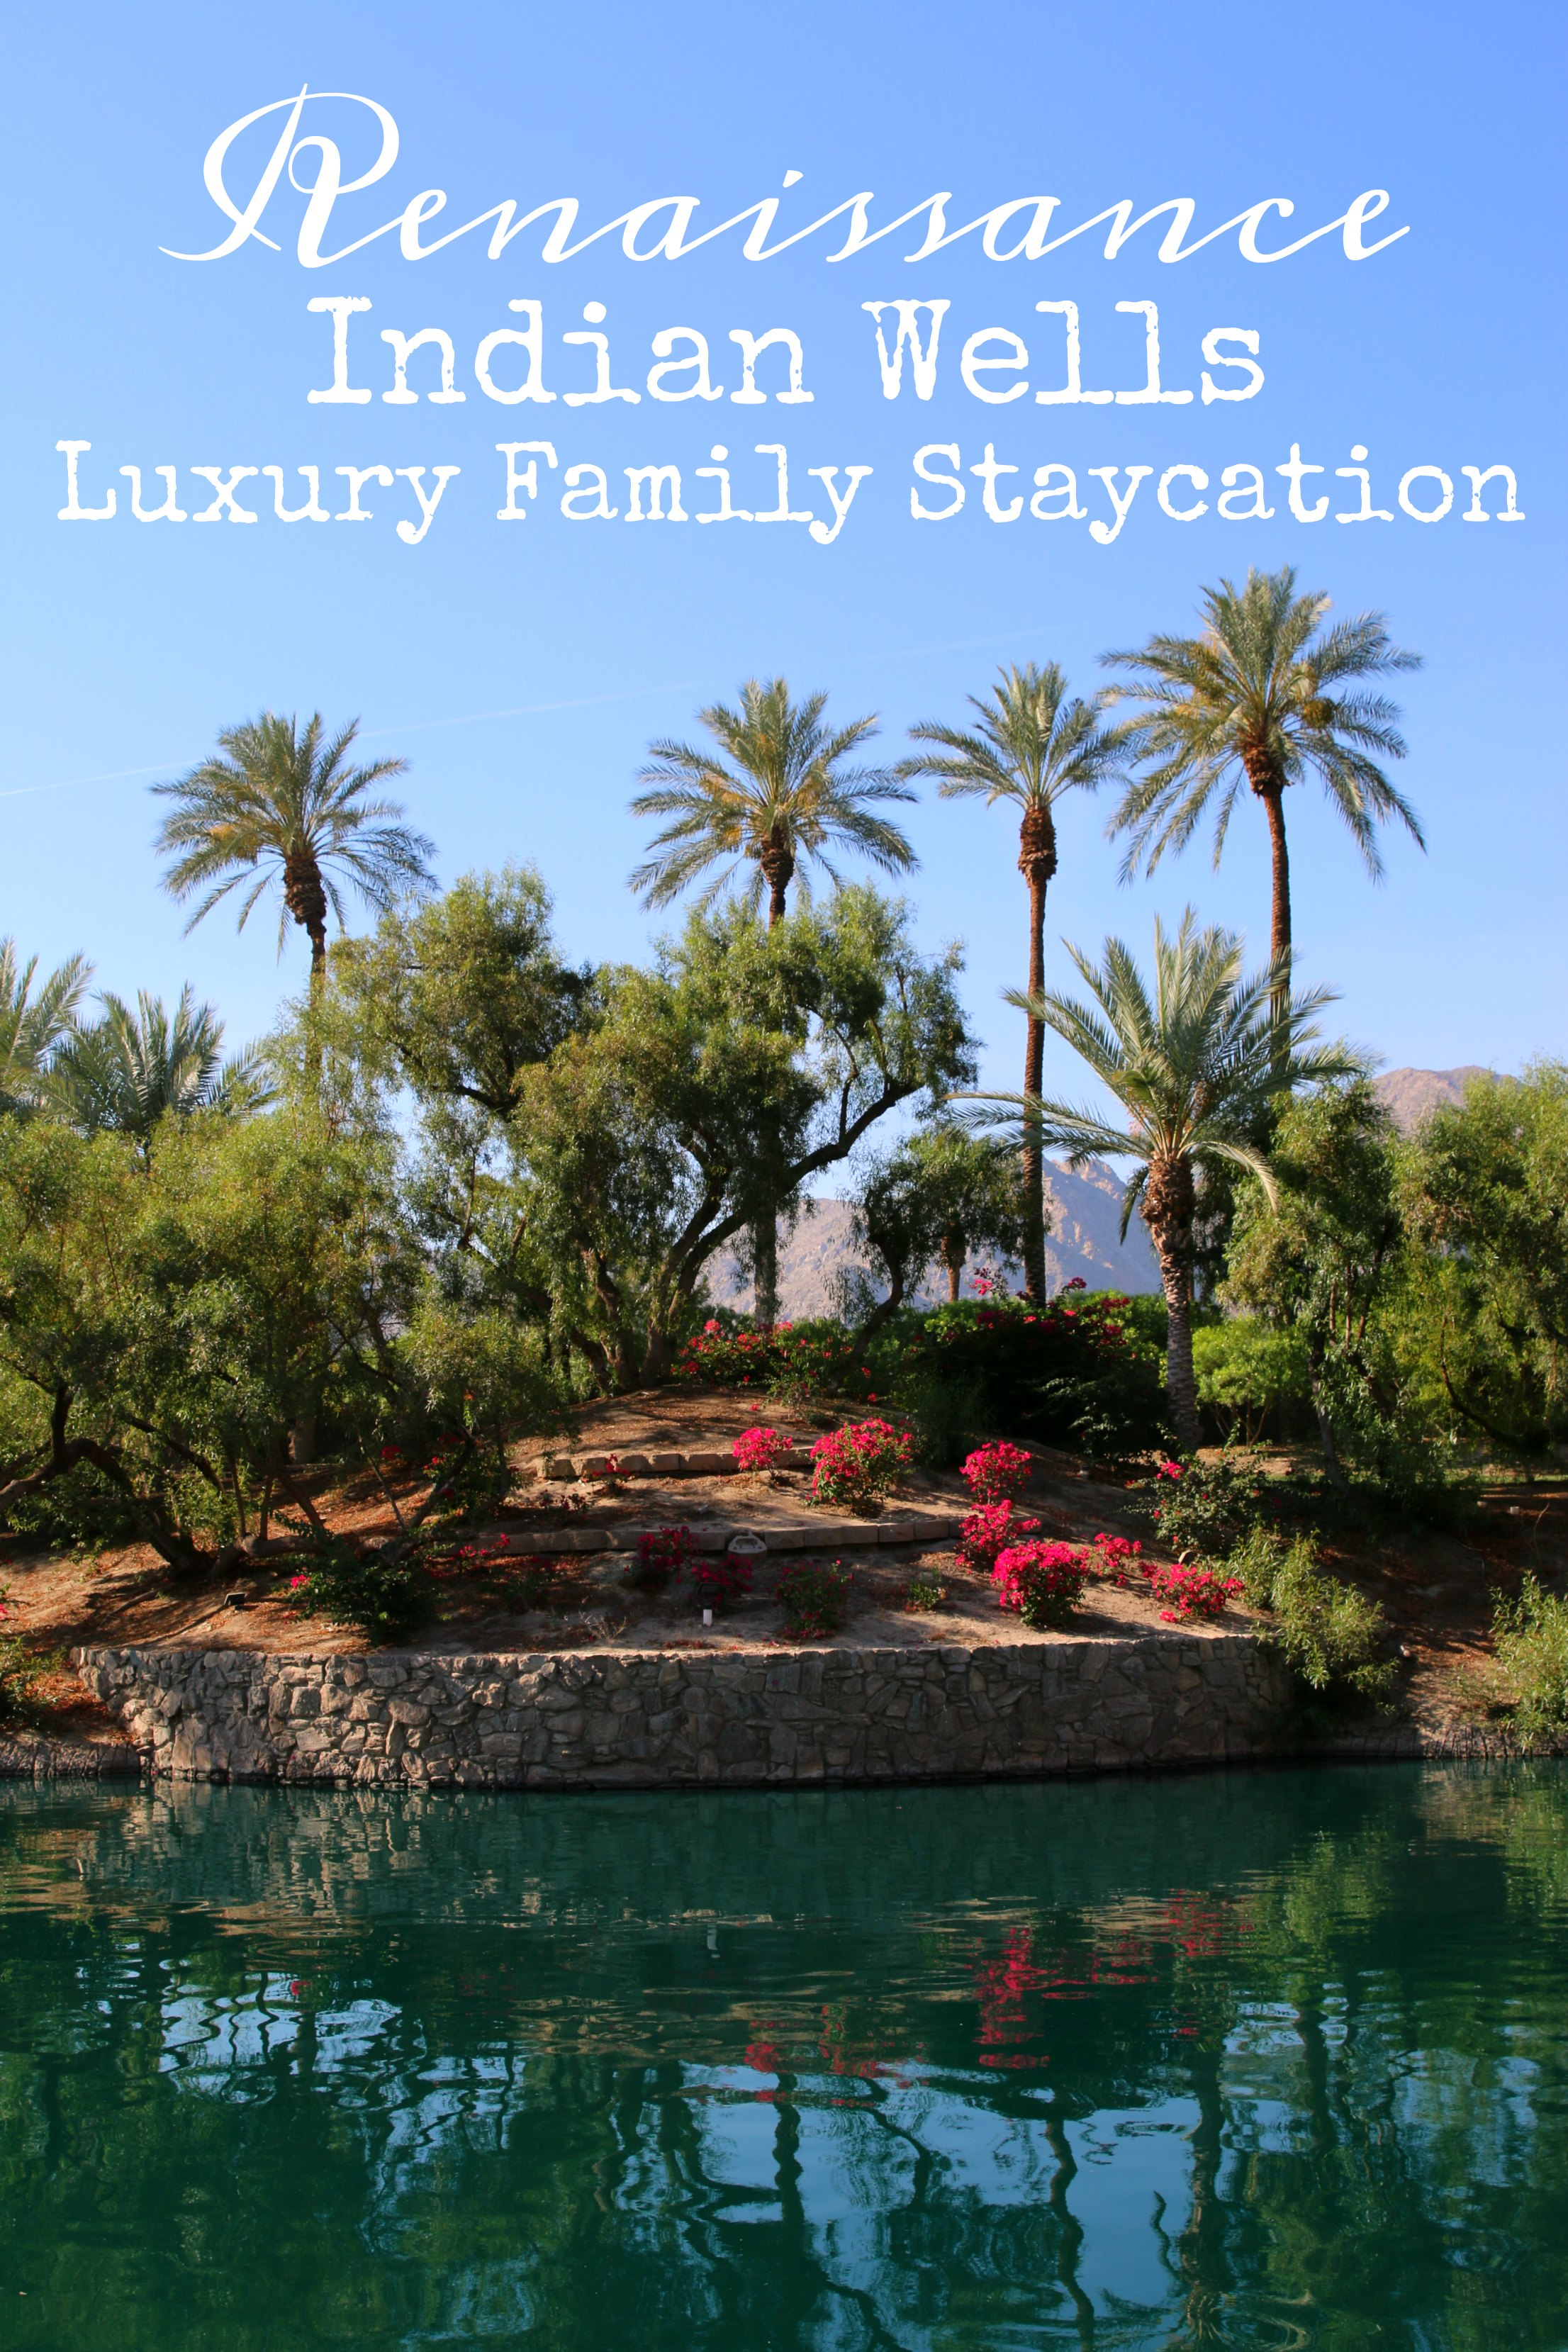 Renaissance Indian Wells Luxury Family Staycation